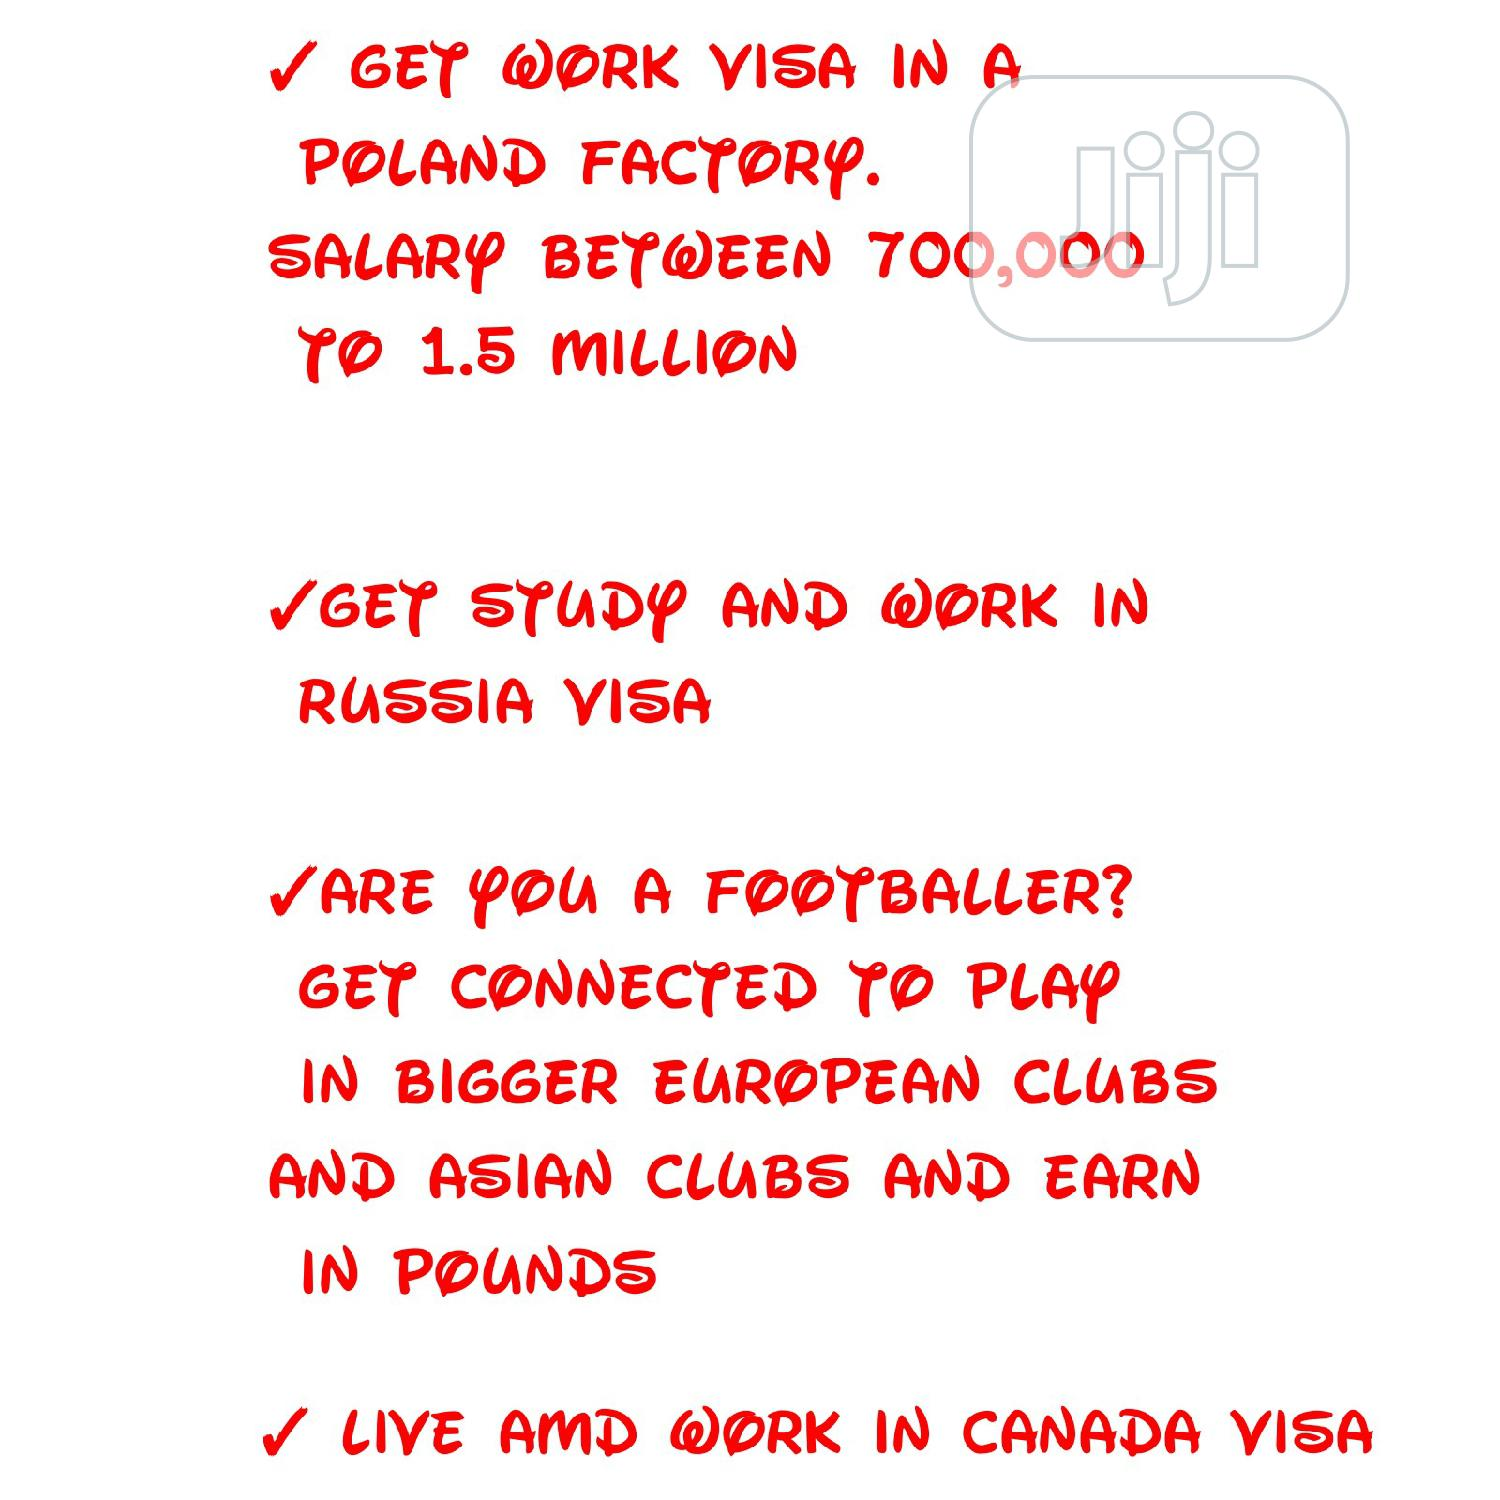 Travel, School and Work Visa for Canada, Russia and Poland